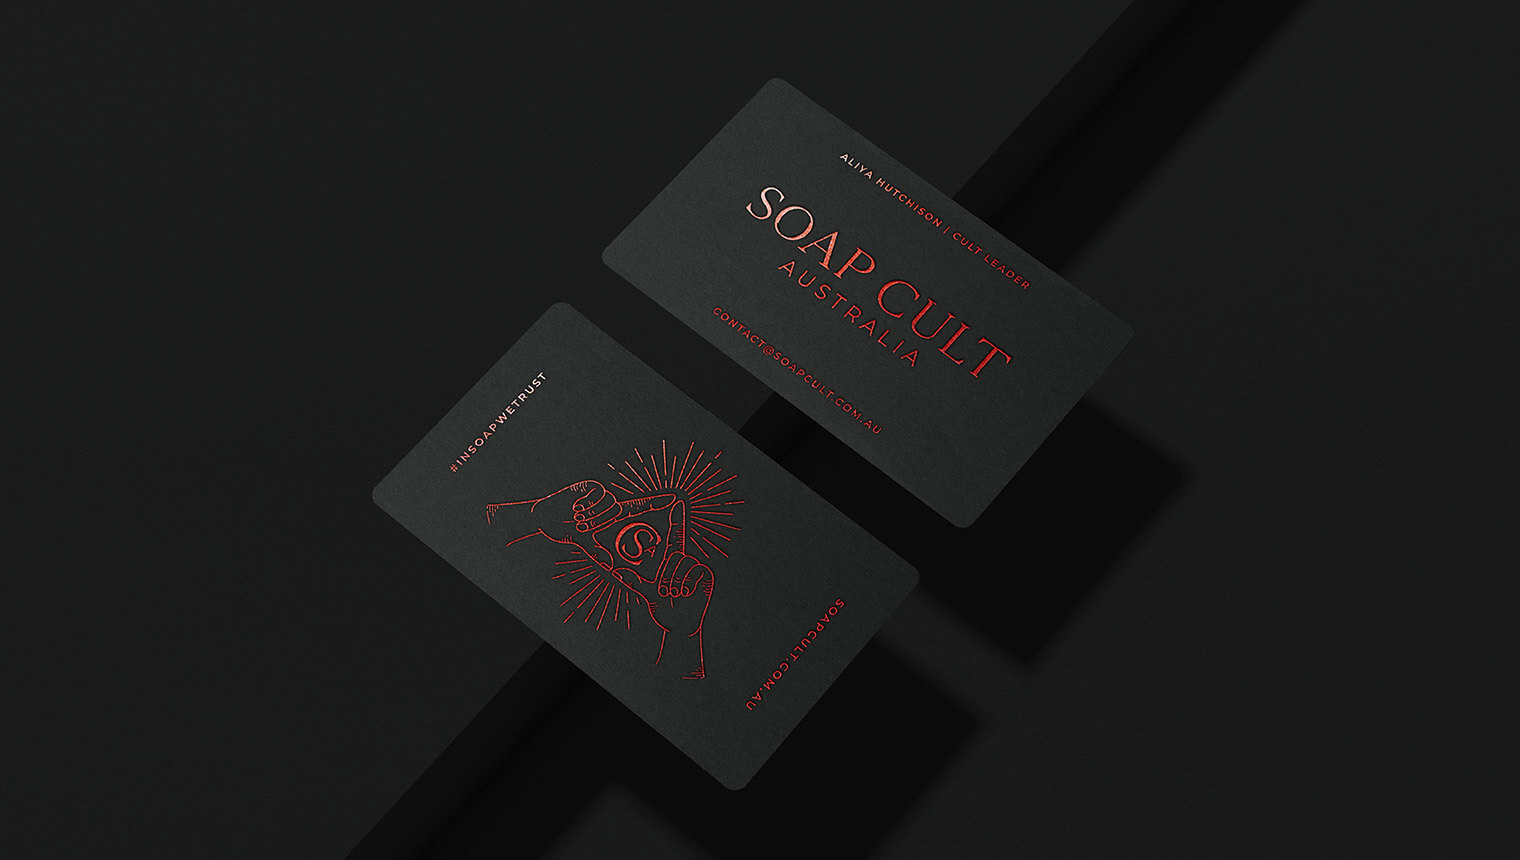 Black business cards with red foil and rounded corners sit on a black background. The details have a cult-like, occult feel.